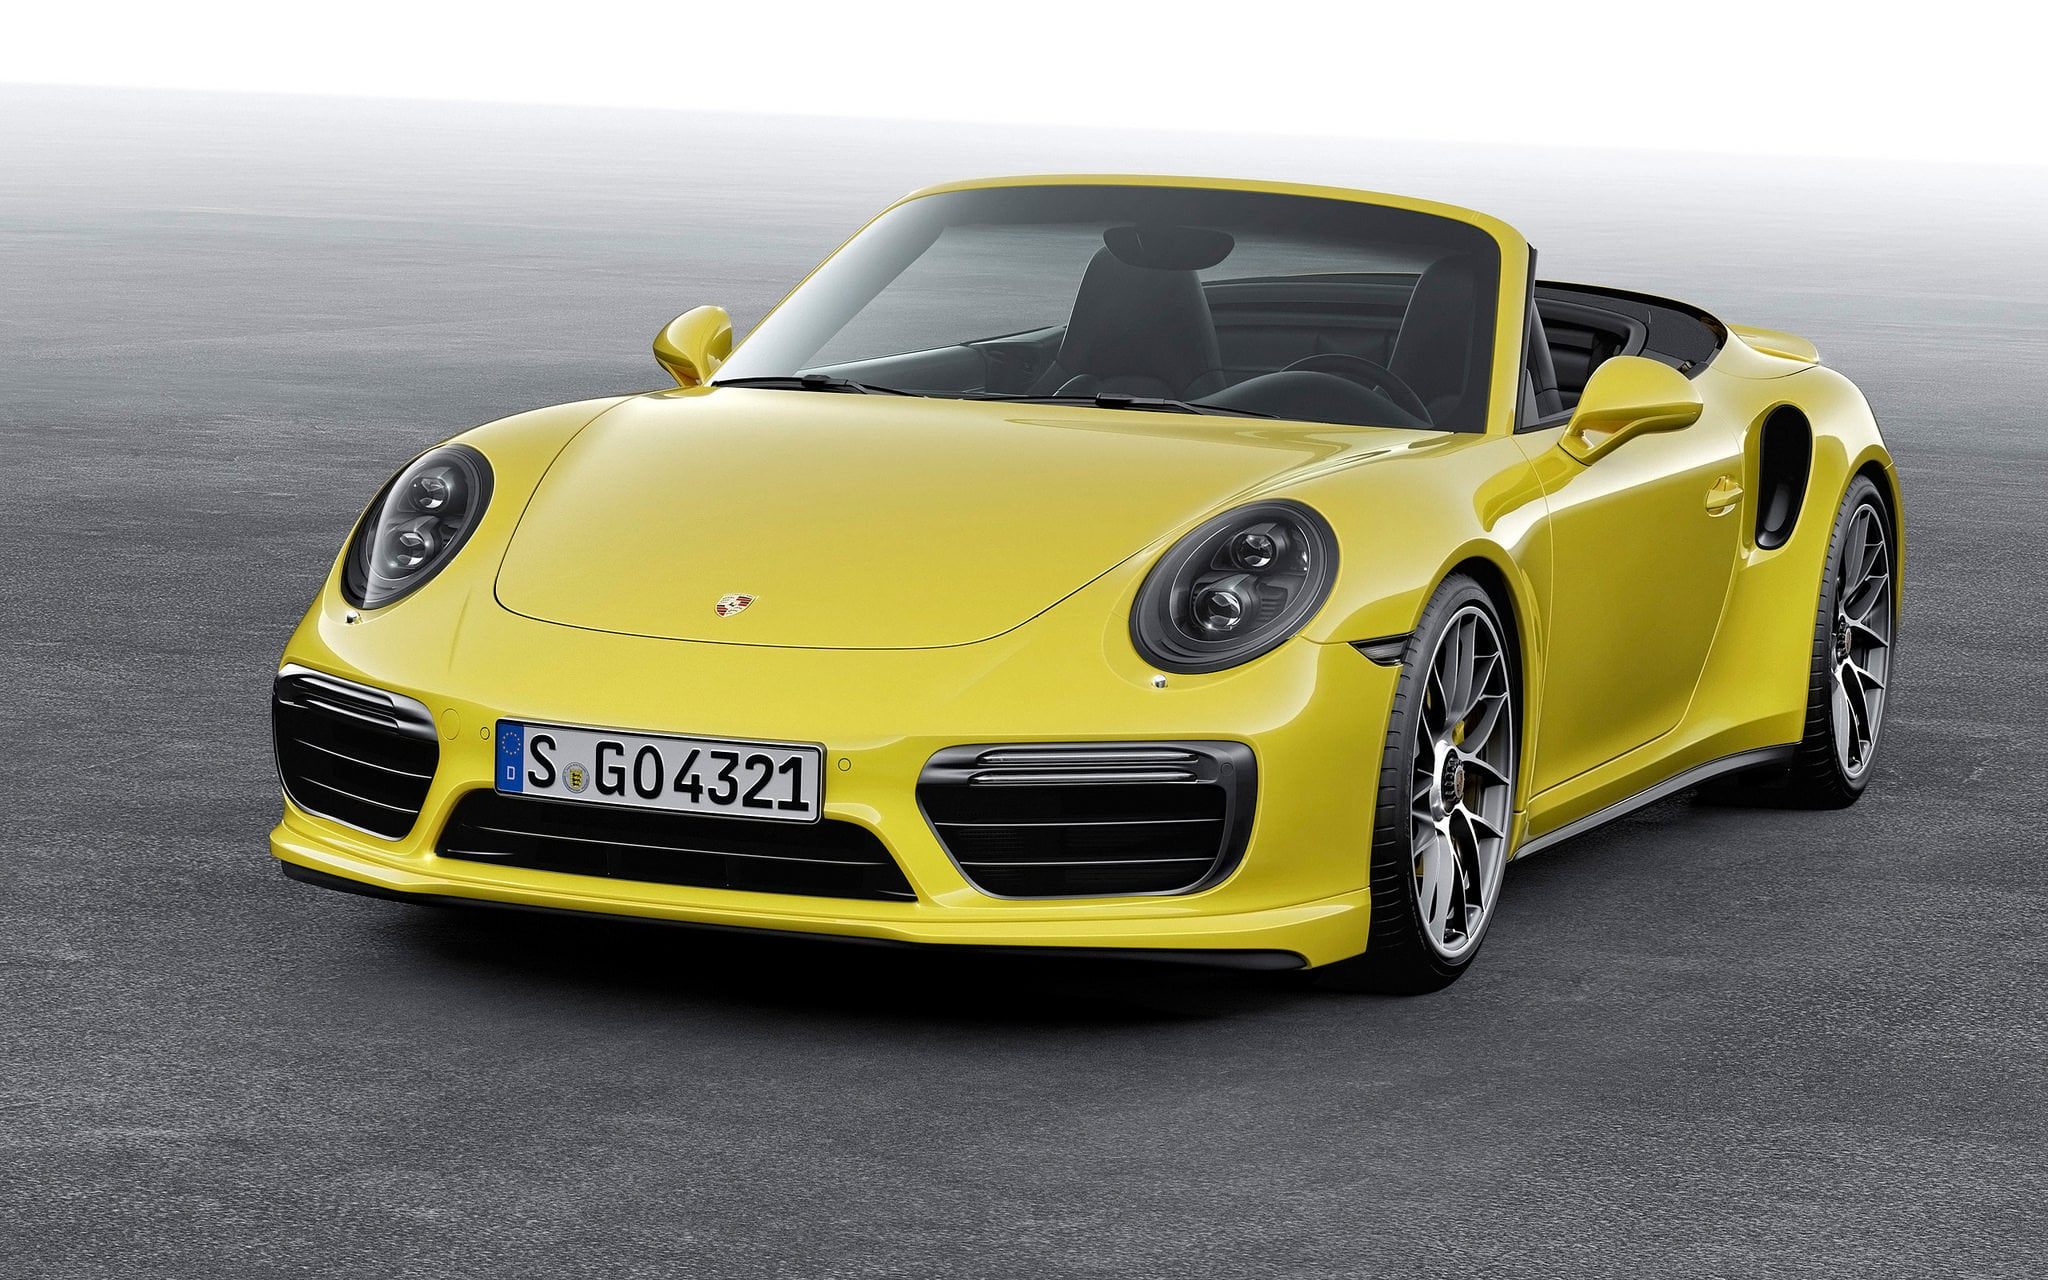 2019 Porsche 911 Turbo Cabriolet photo - 2